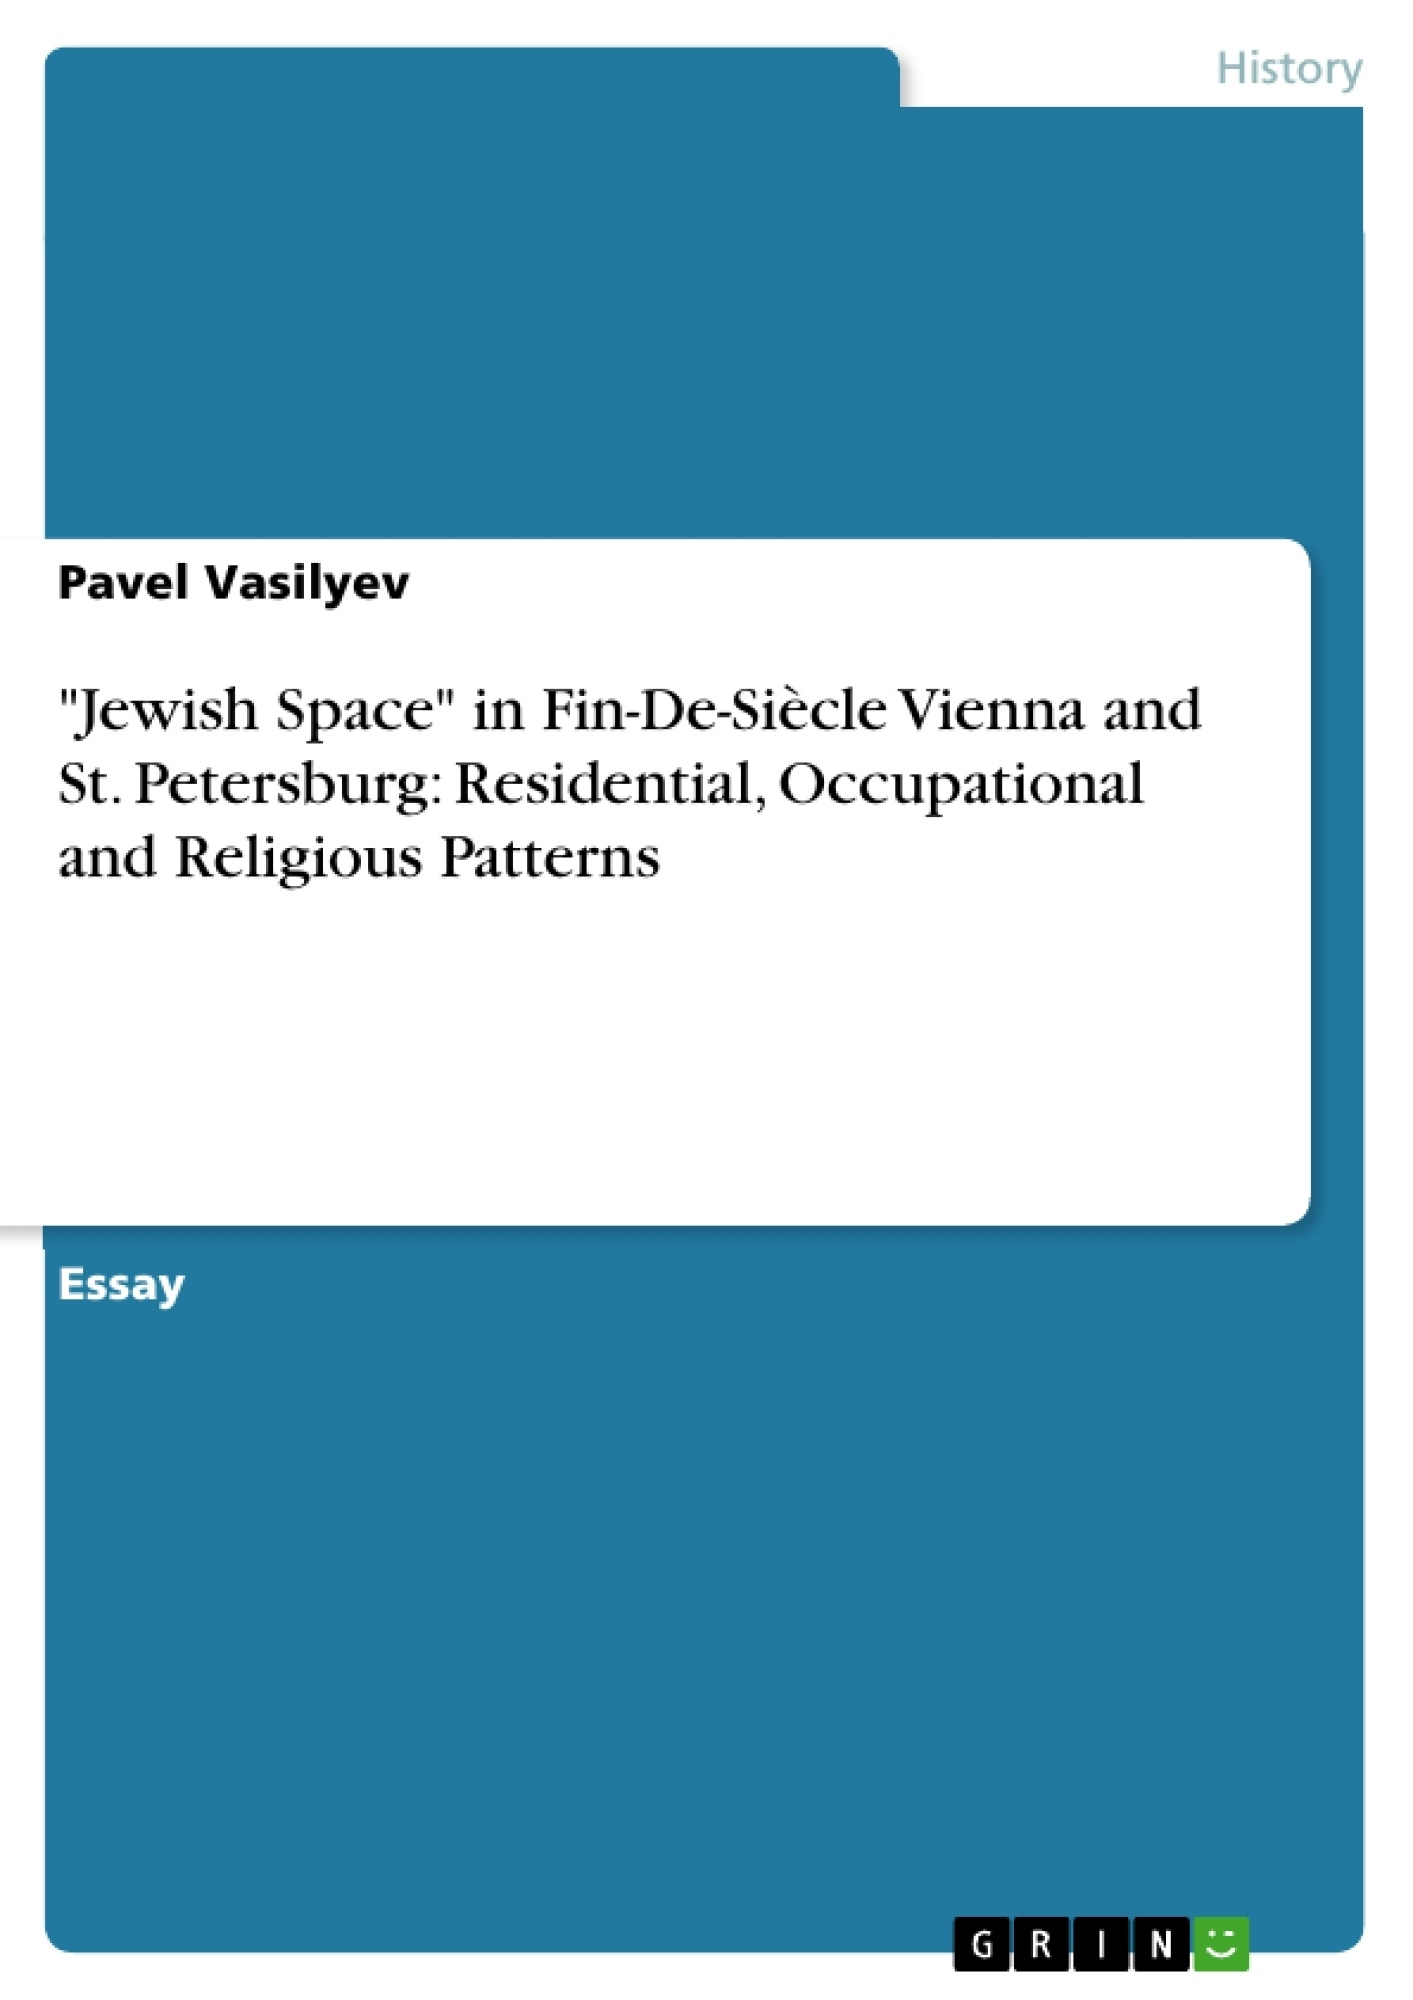 """Title: """"Jewish Space"""" in Fin-De-Siècle Vienna and St. Petersburg: Residential, Occupational and Religious Patterns"""